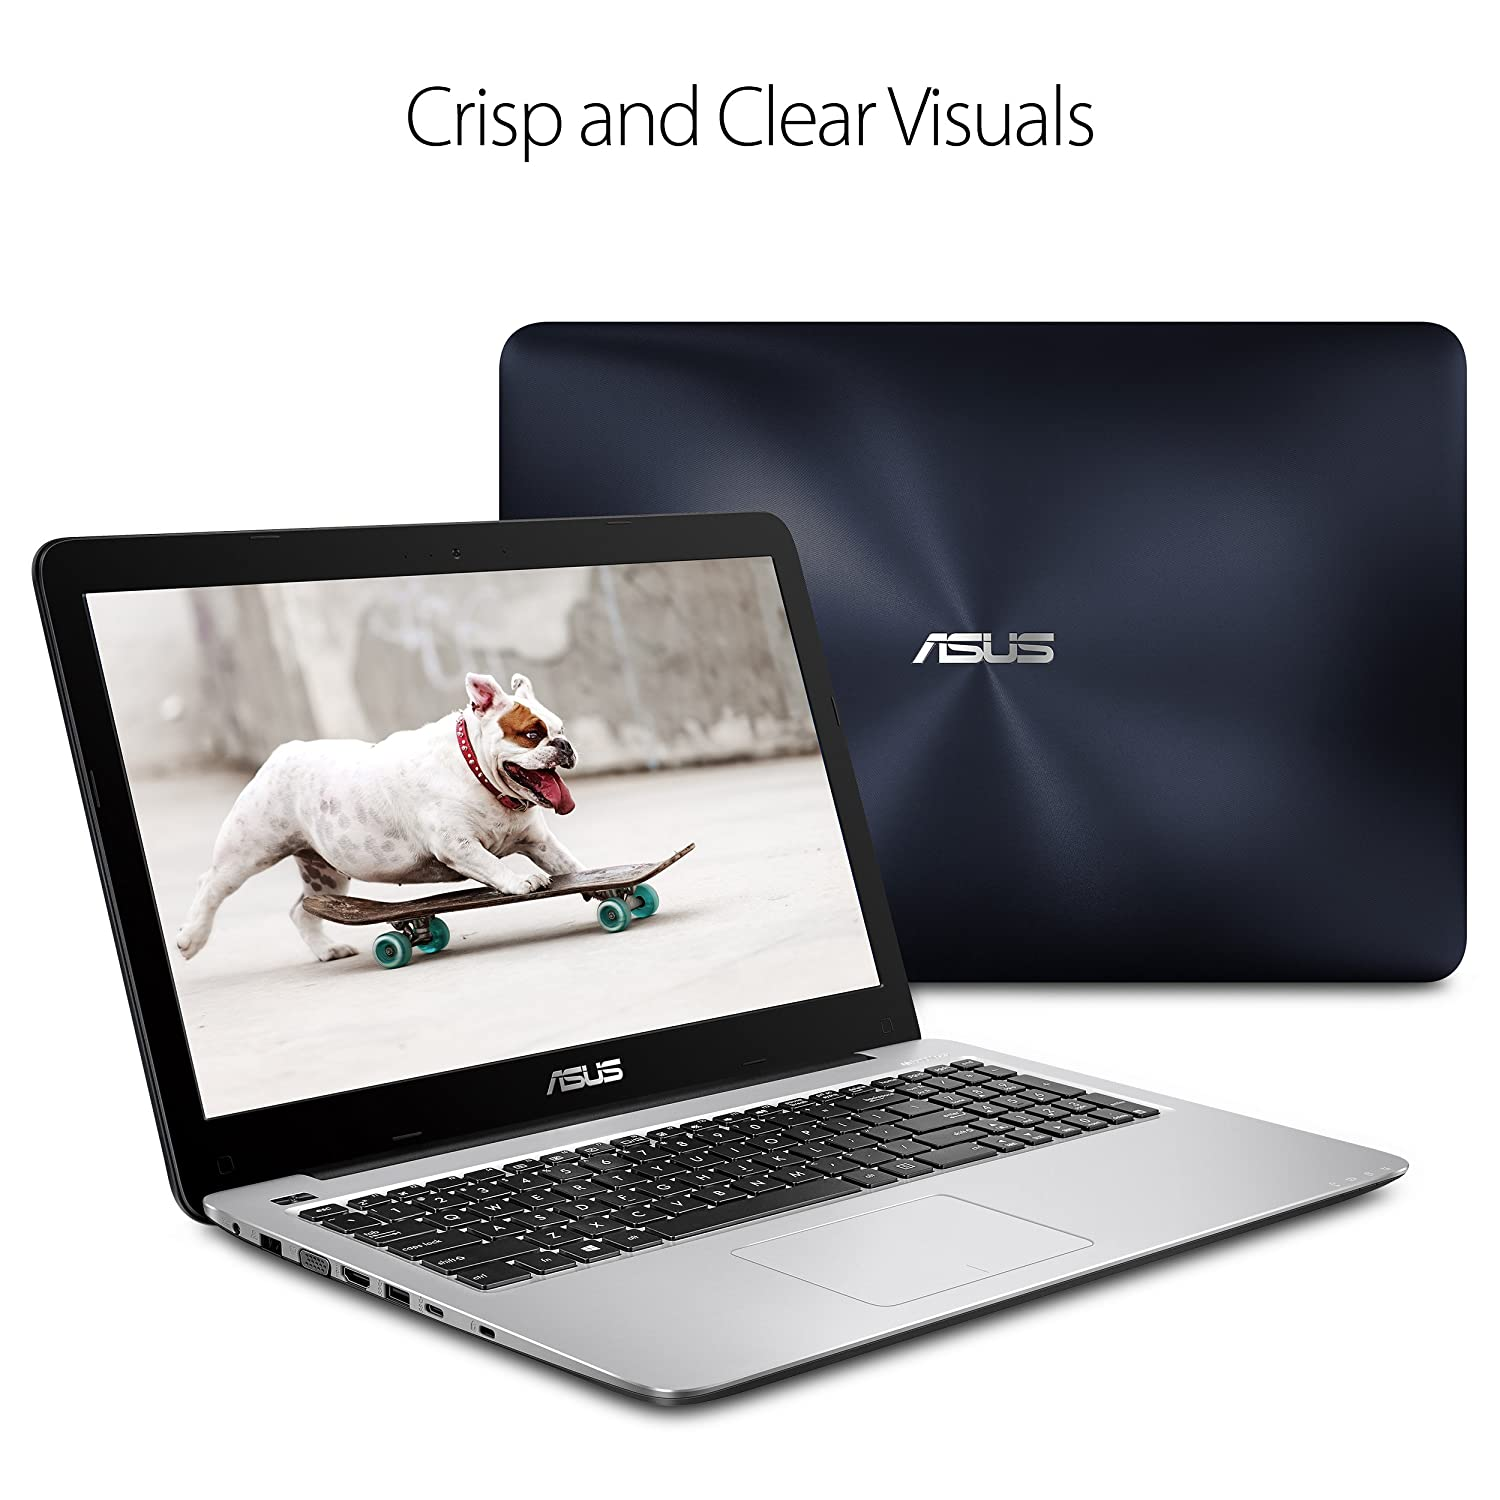 ASUS VivoBook X556UQ-NH71 15.6 inch Gaming Laptop